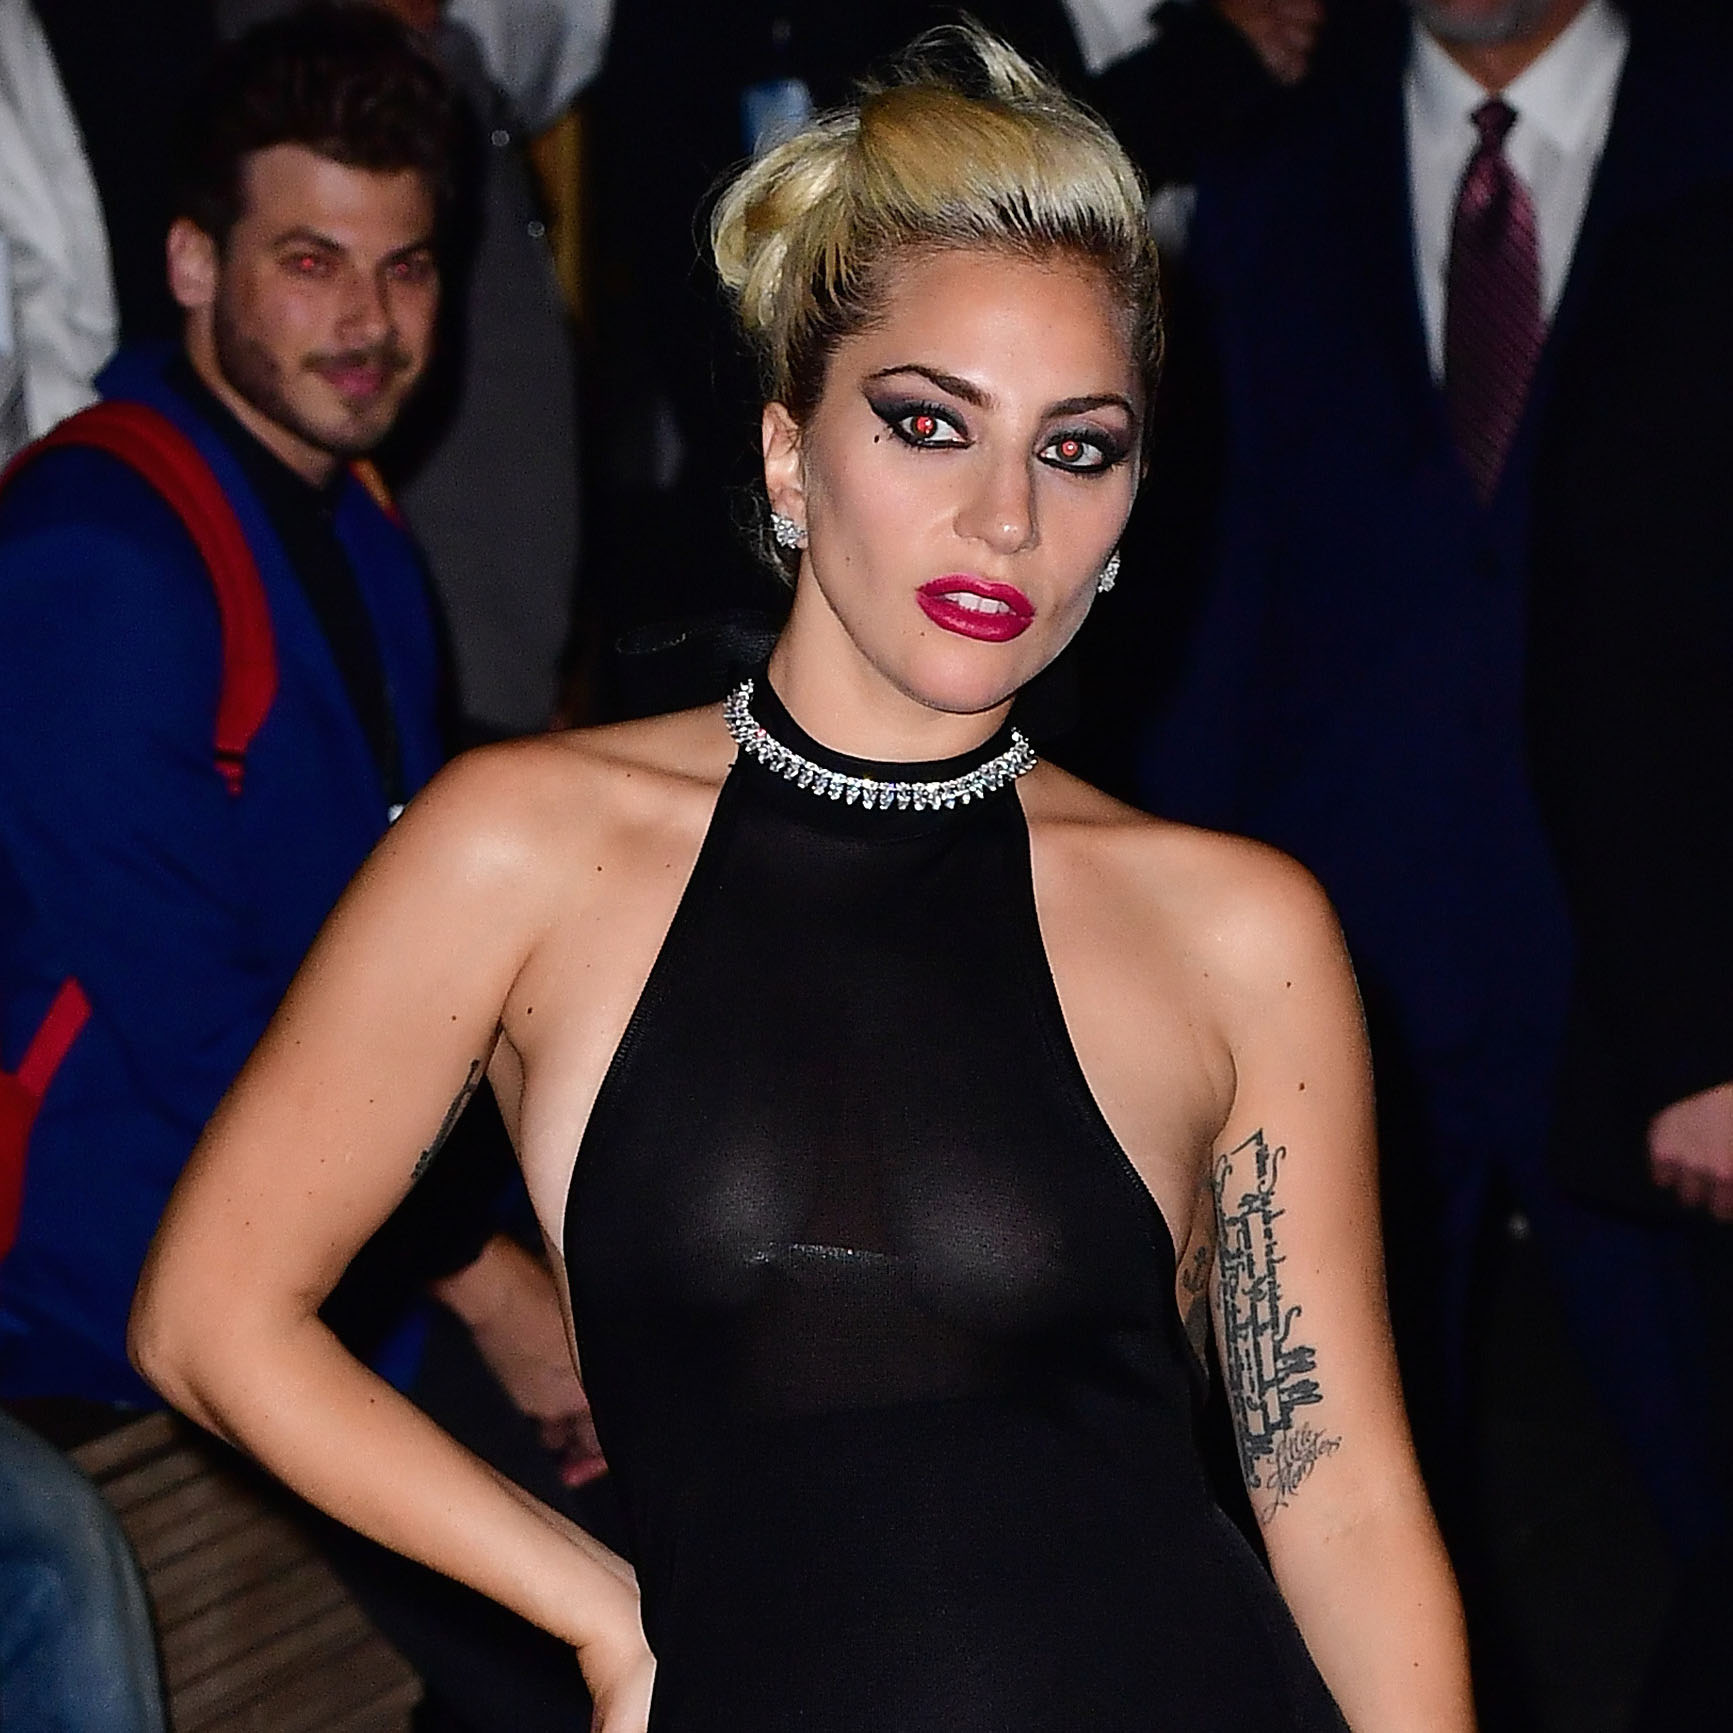 gaga-dive-bar-tour-fwx